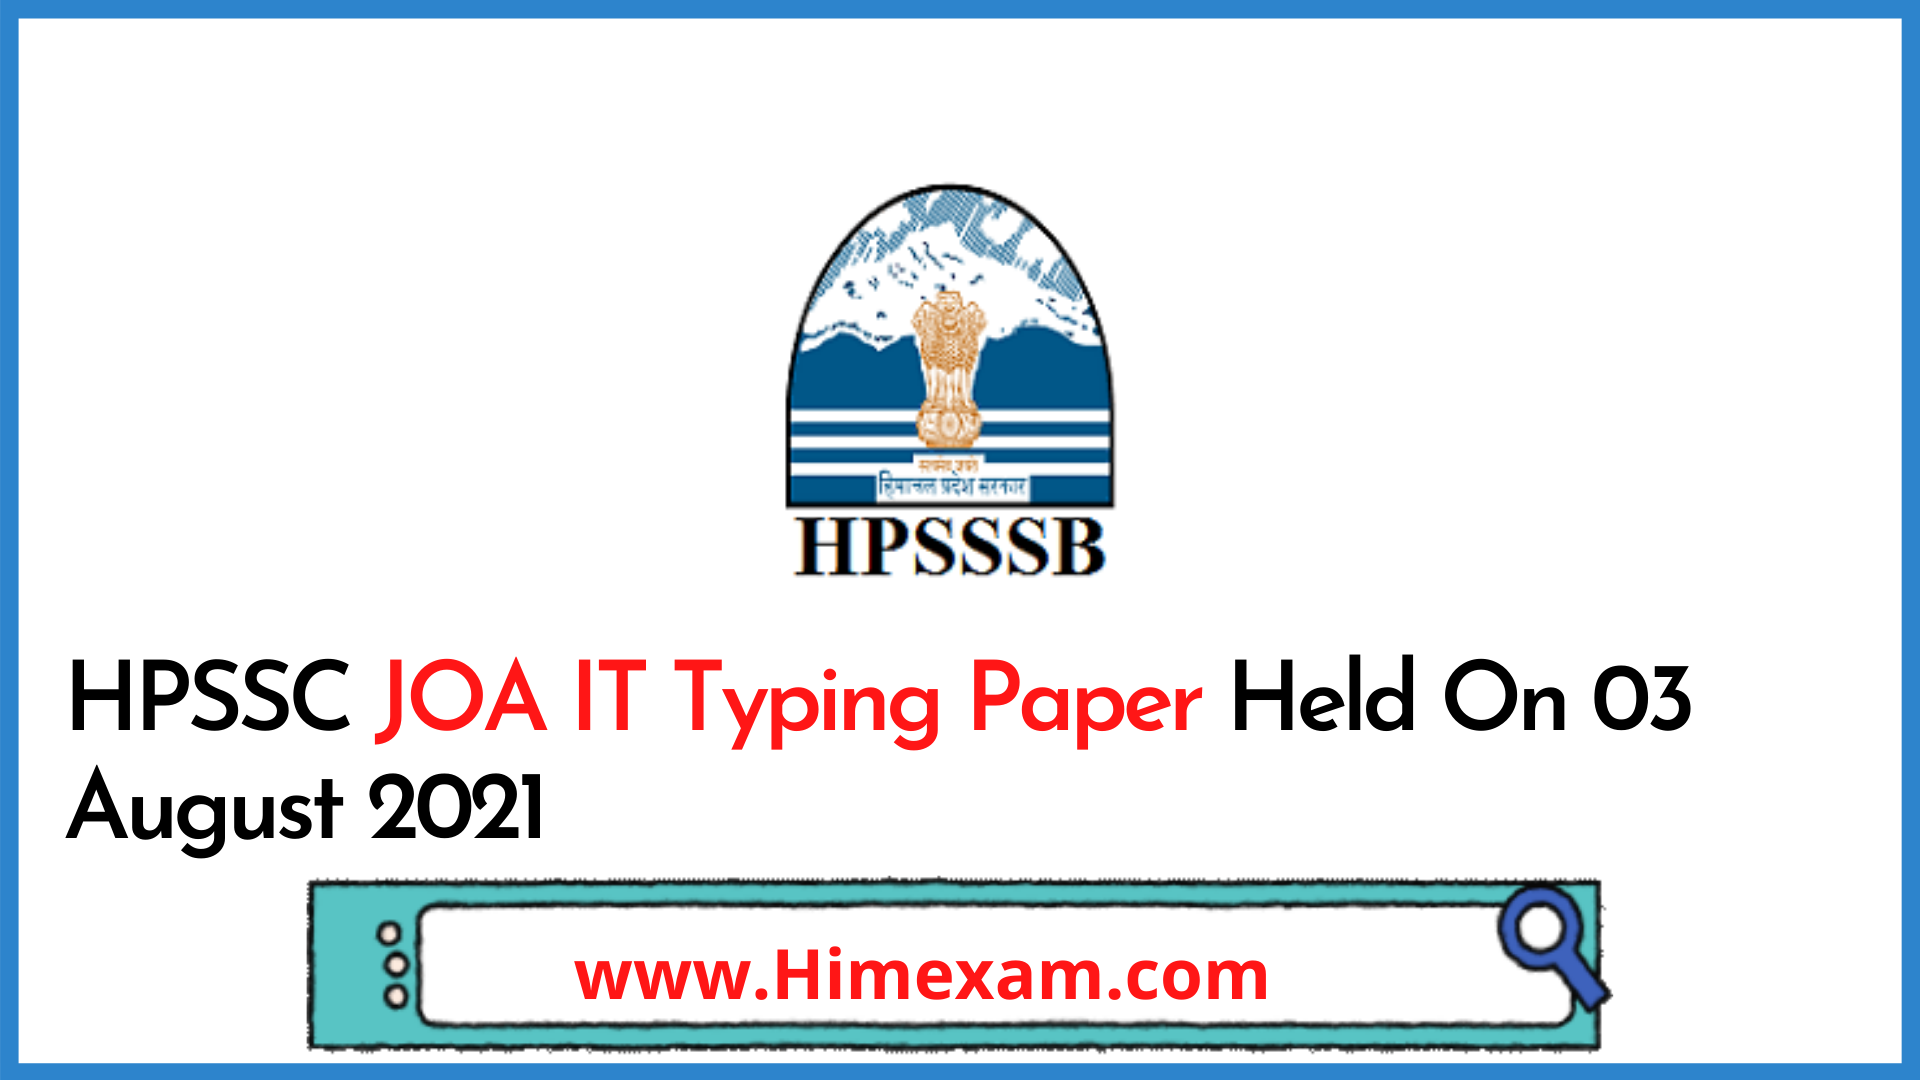 HPSSC JOA IT Typing Paper Held On 03 August 2021